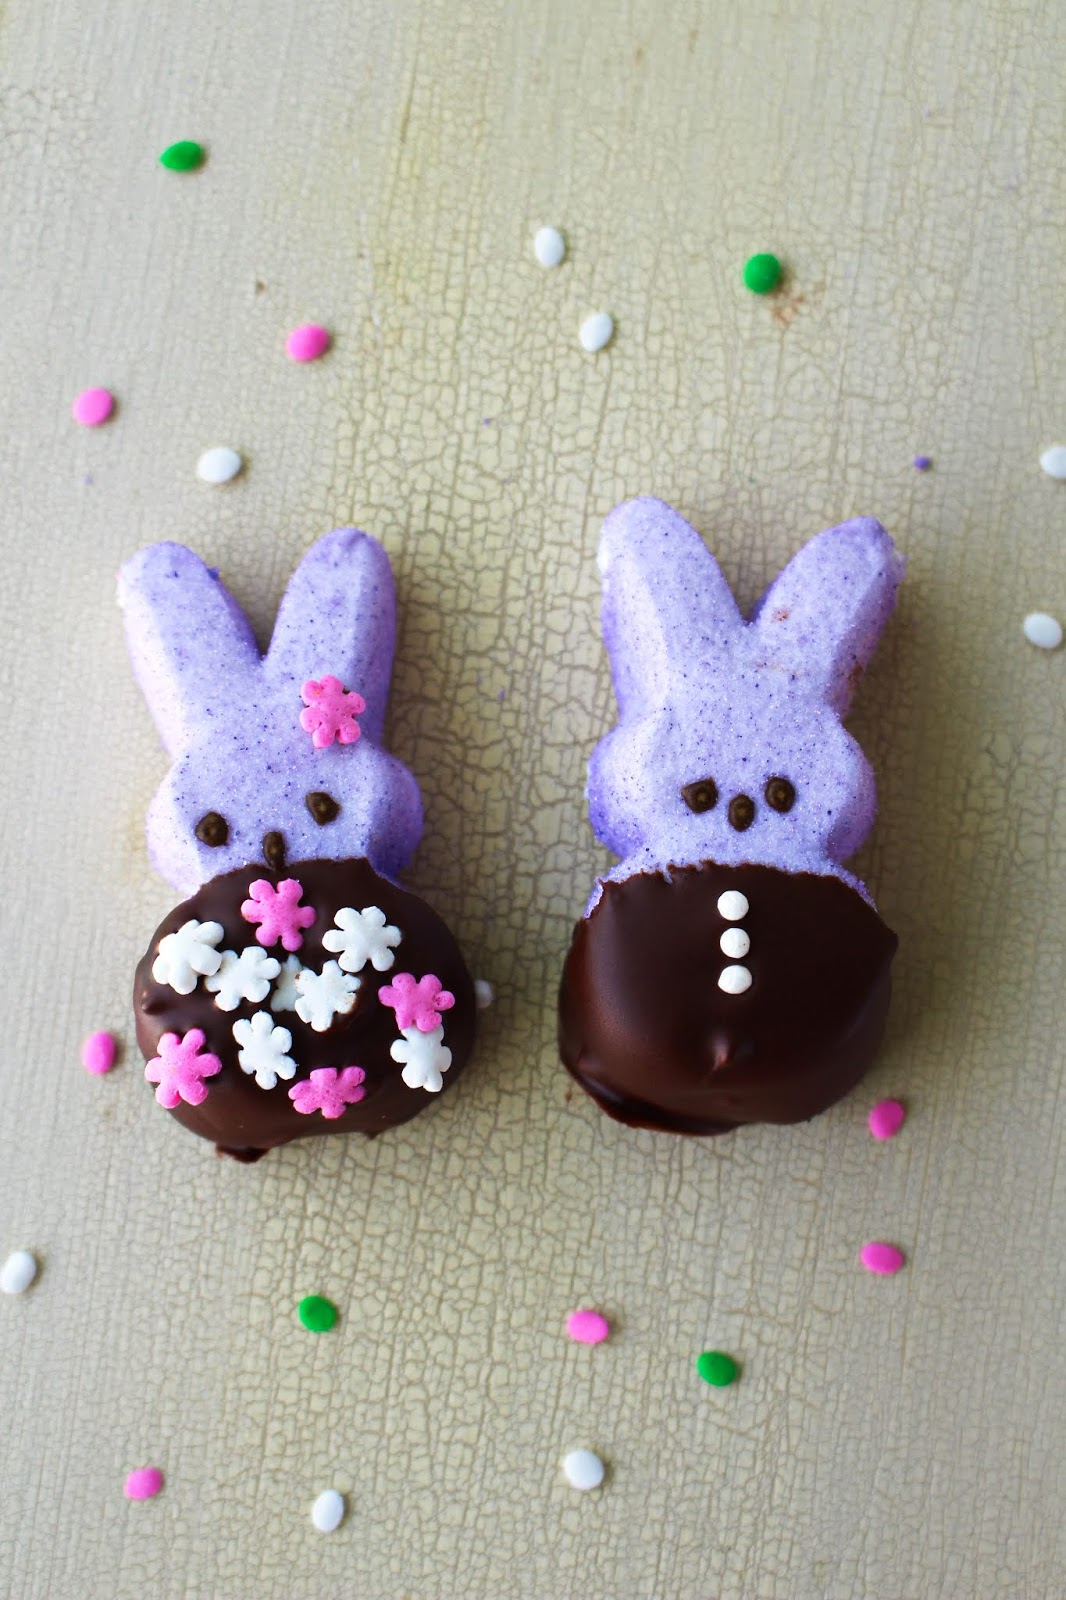 Chocolate Covered Peeps take your favorite Easter marshmallow treats up a notch by dipping them in an irresistible chocolate coating. You will never want to eat them any other way again! #Easter #peeps #dessert